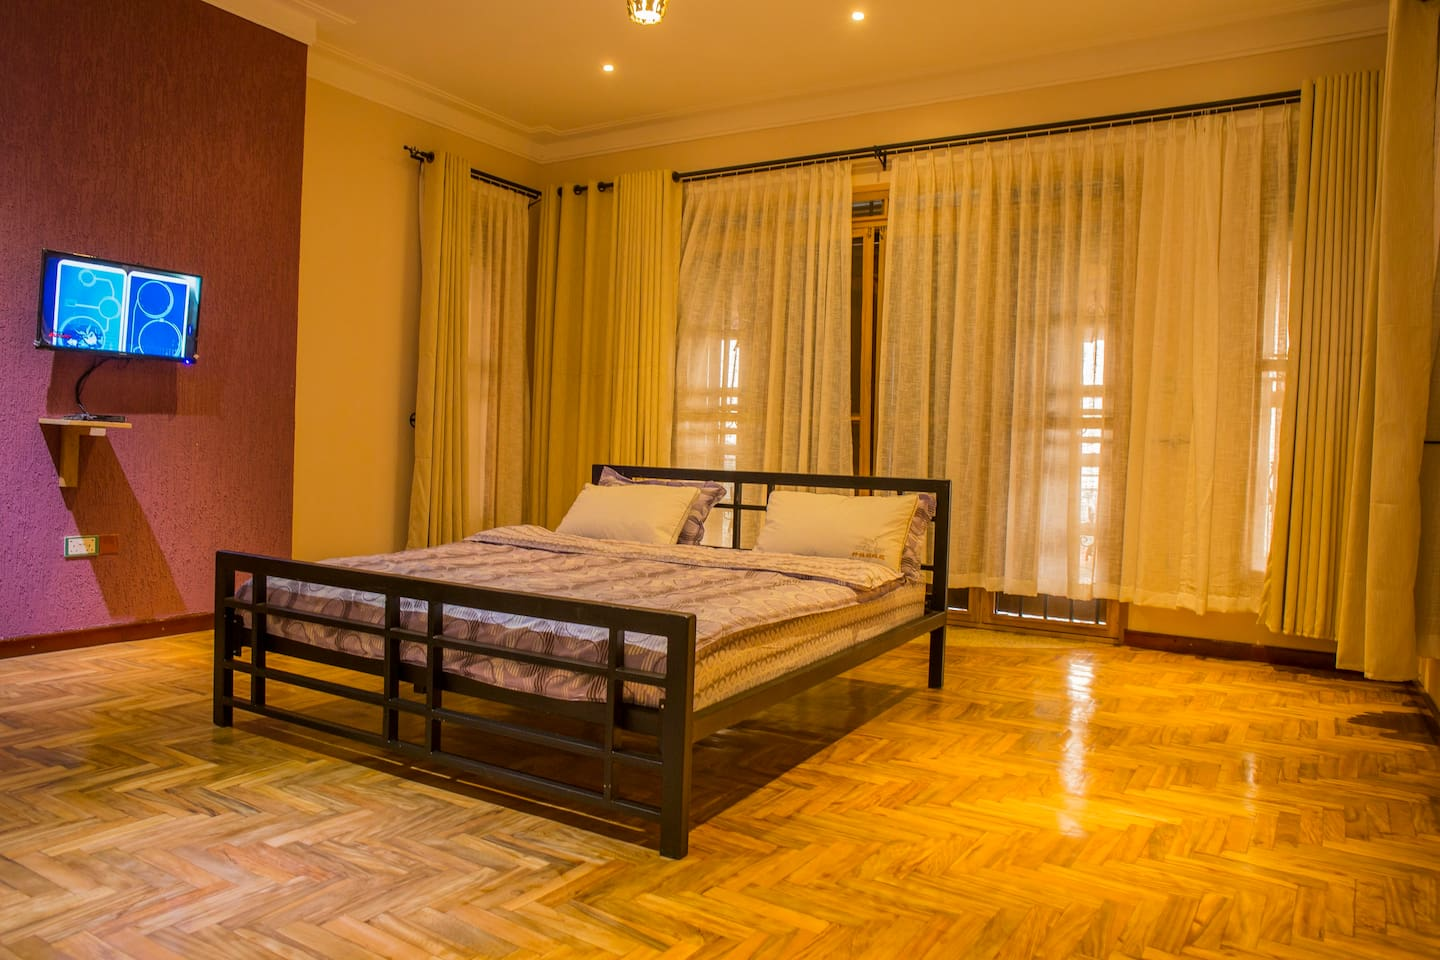 Spacious room for the suite room